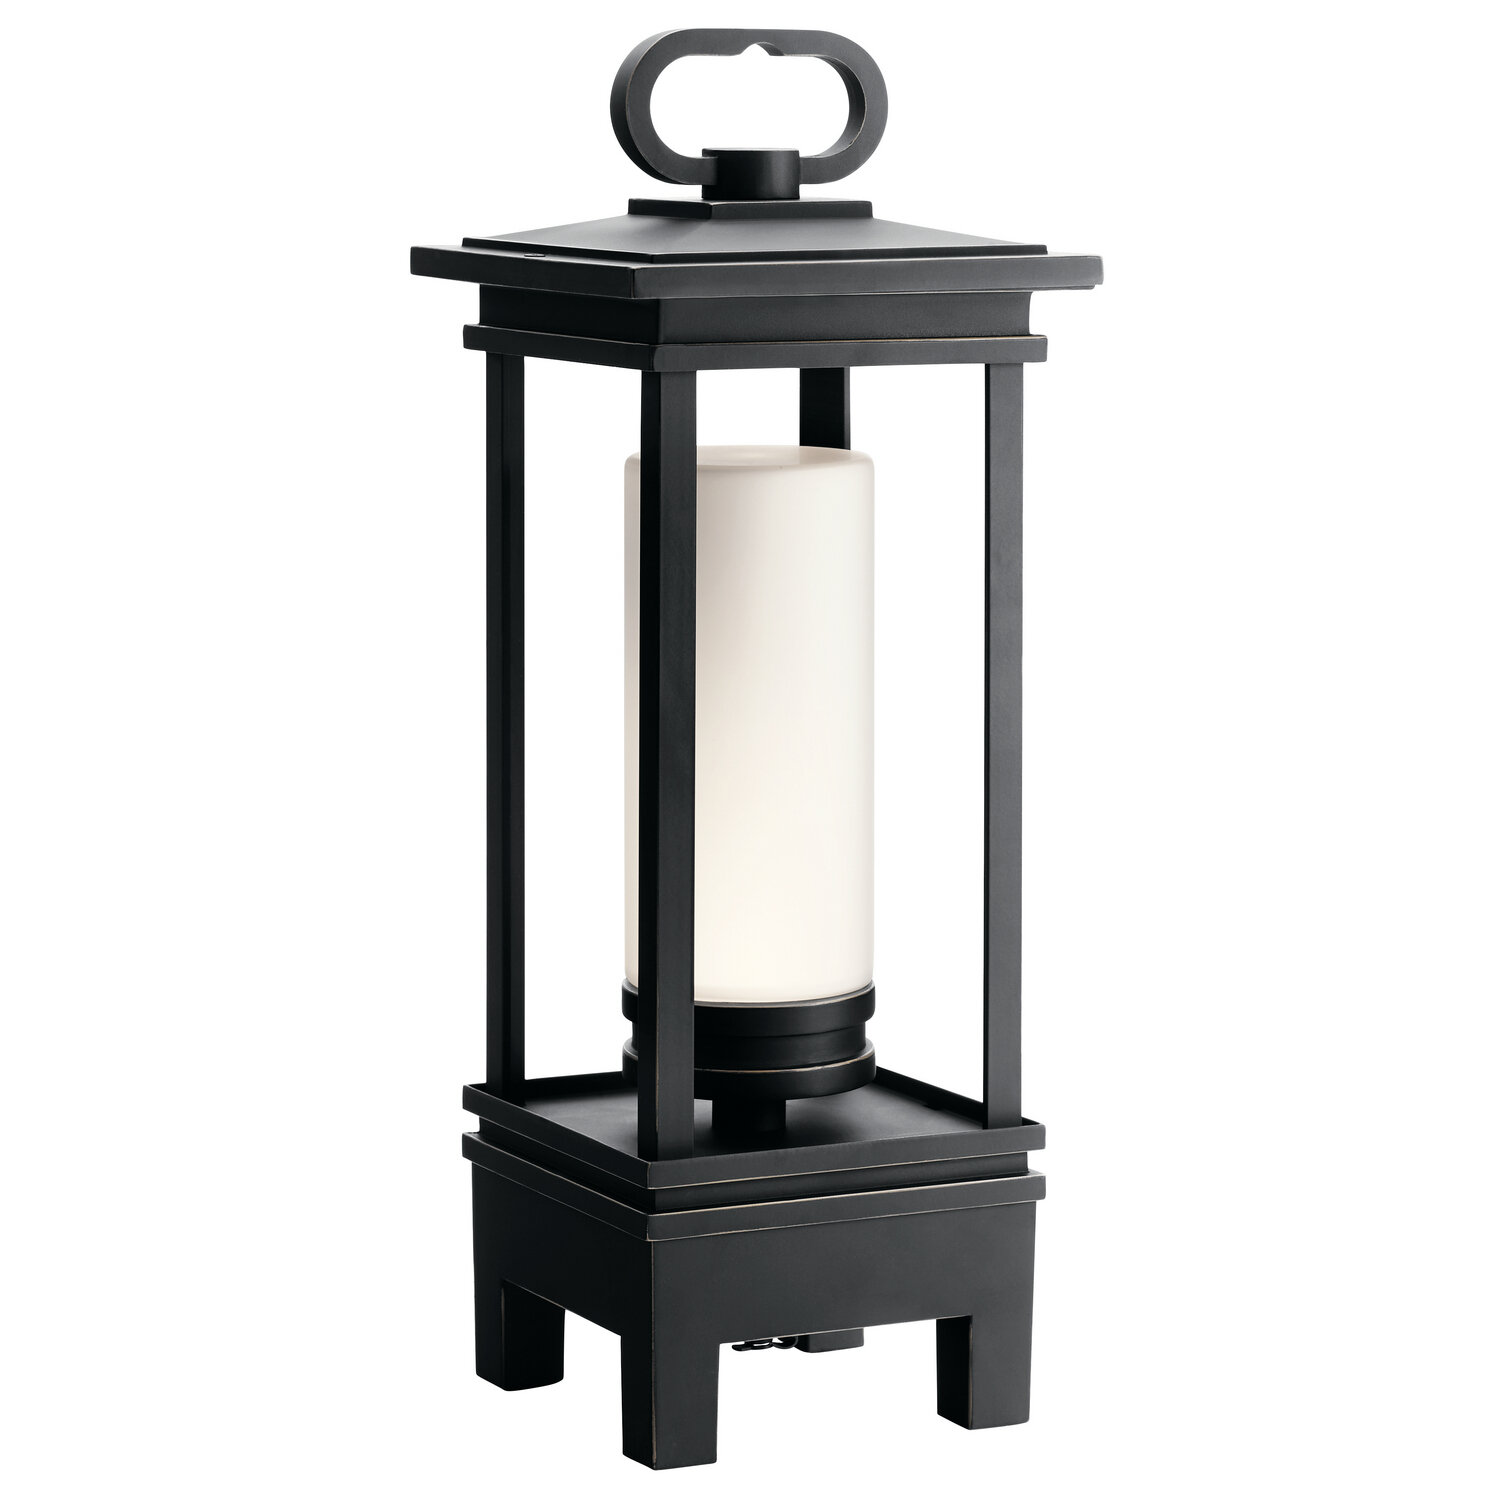 South Hope Rubbed Bronze LED Exterior Lantern w/Bluetooth